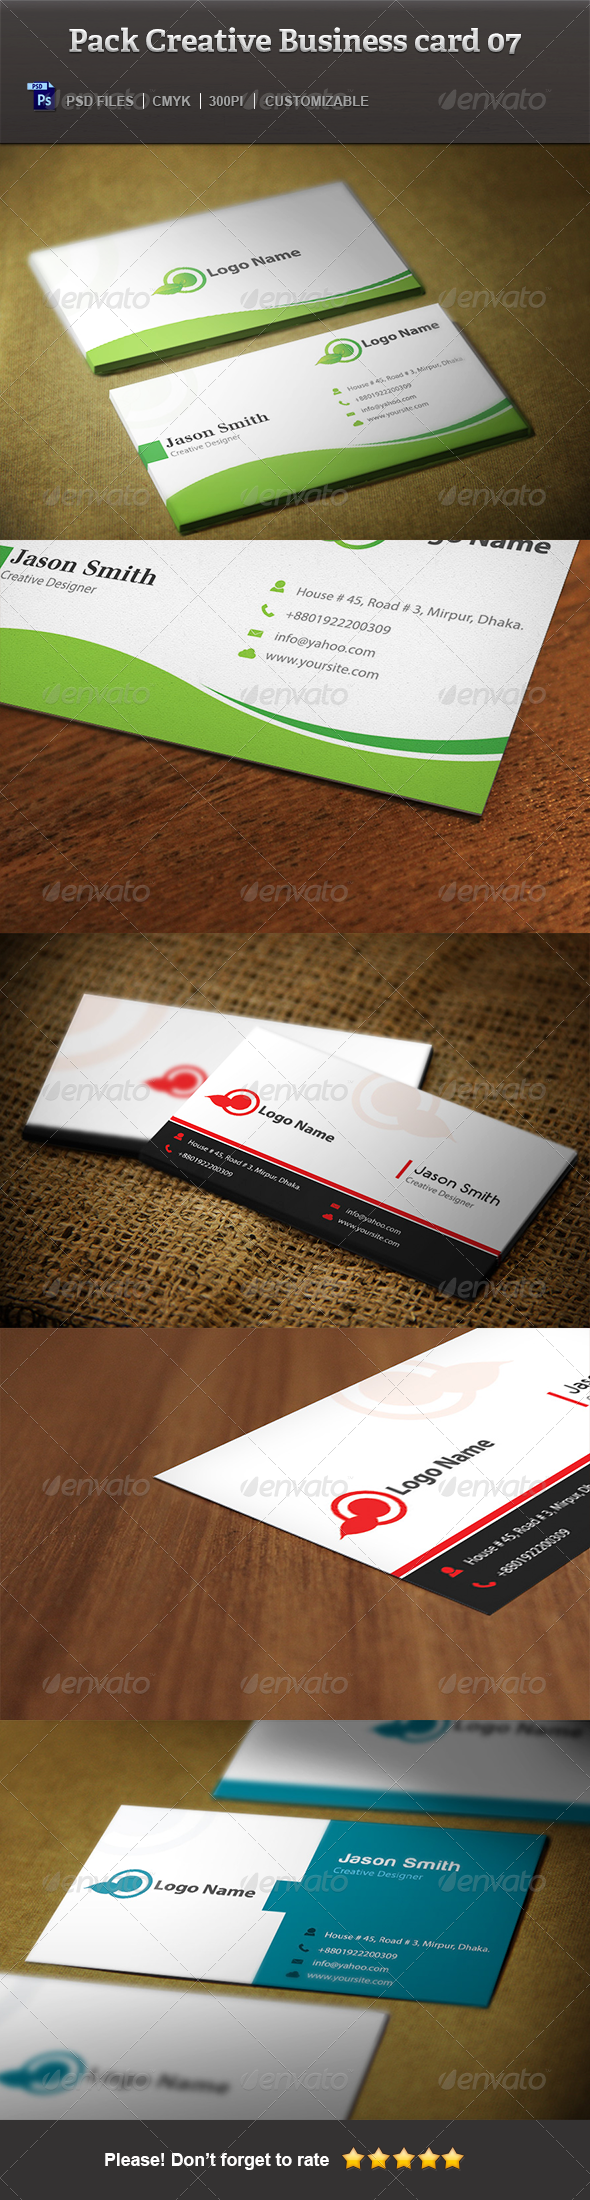 pack creative business card 07 print templates gfx database